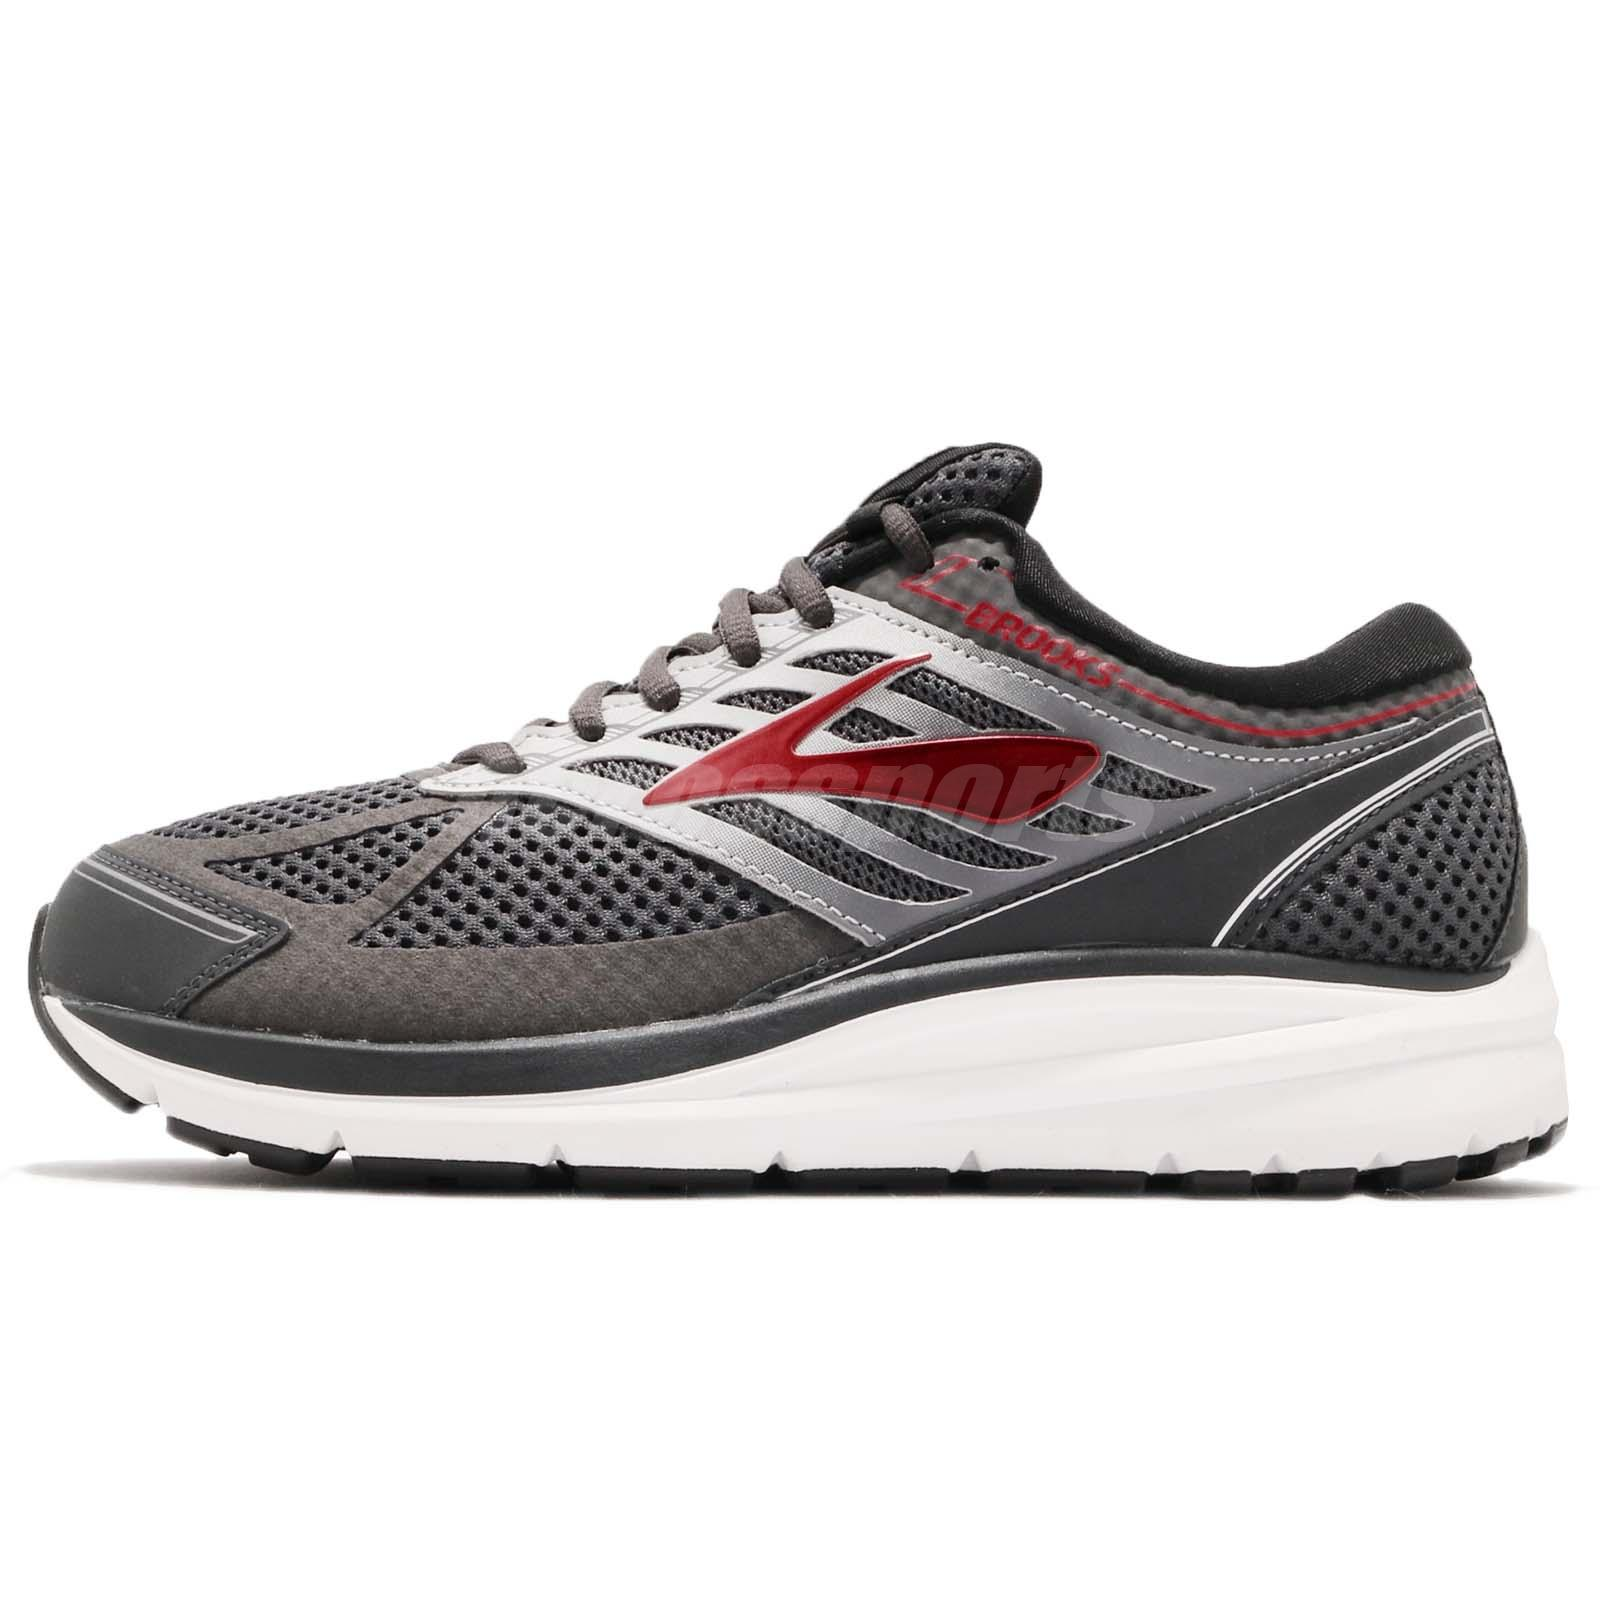 4e8b240e771 Brooks Addiction 13 4E Extra Wide Ebony Black Red Men Running Shoes 110261  4E